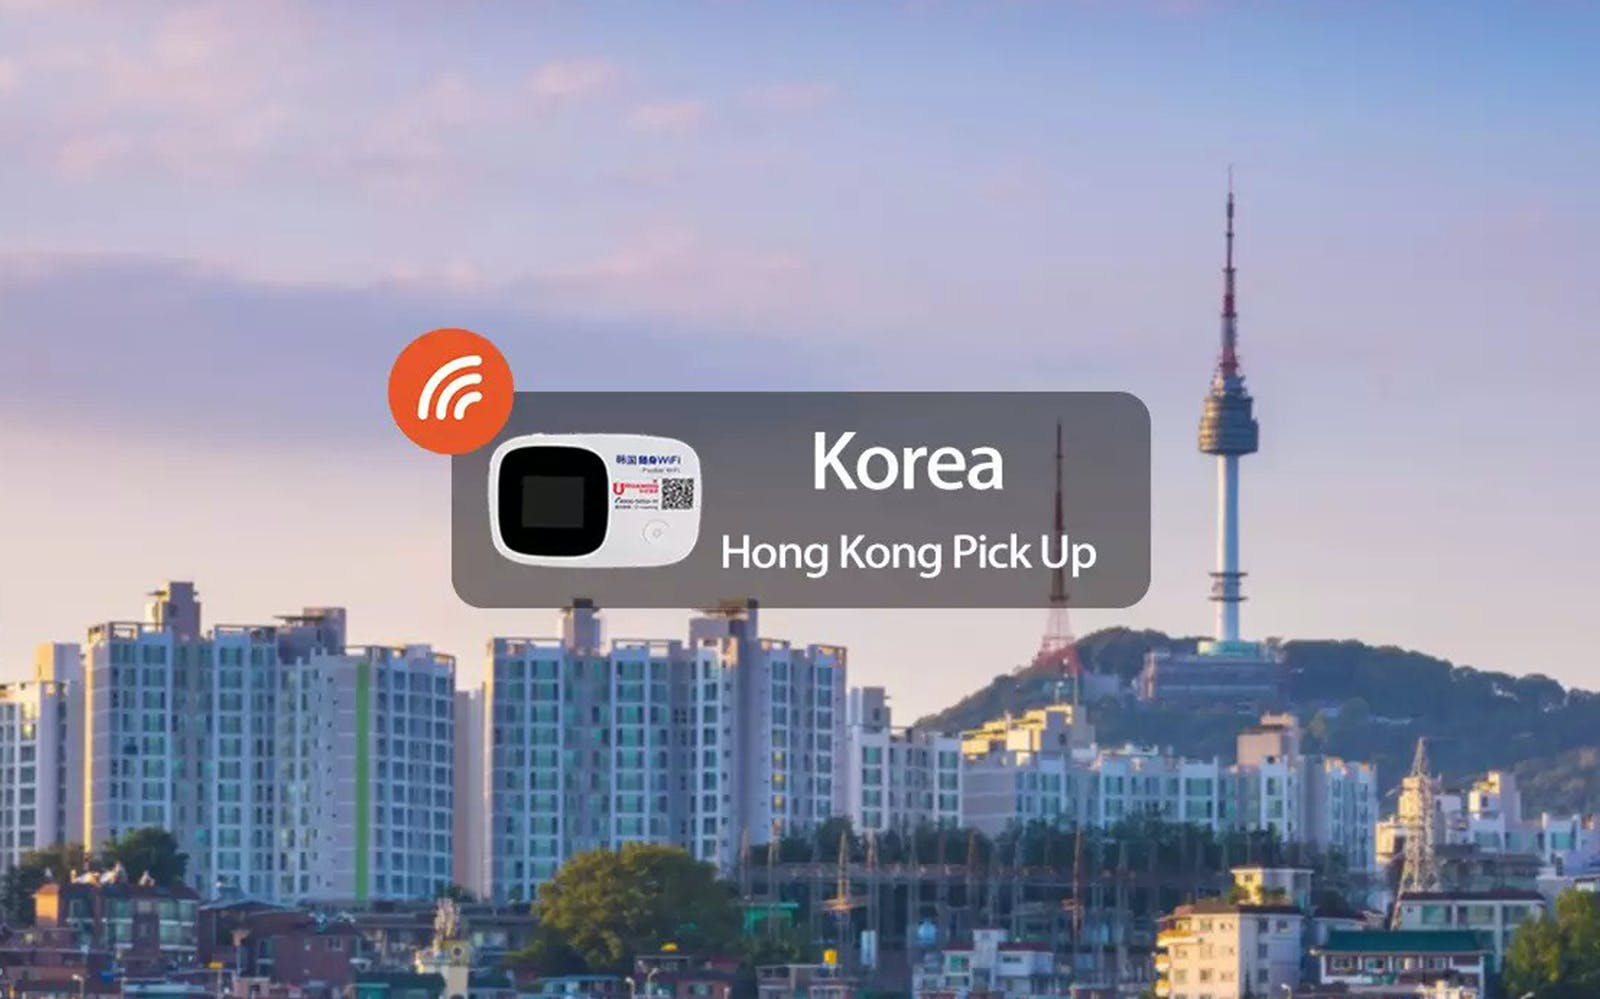 Korea 4G Unlimited Data Pick Up From Hong Kong